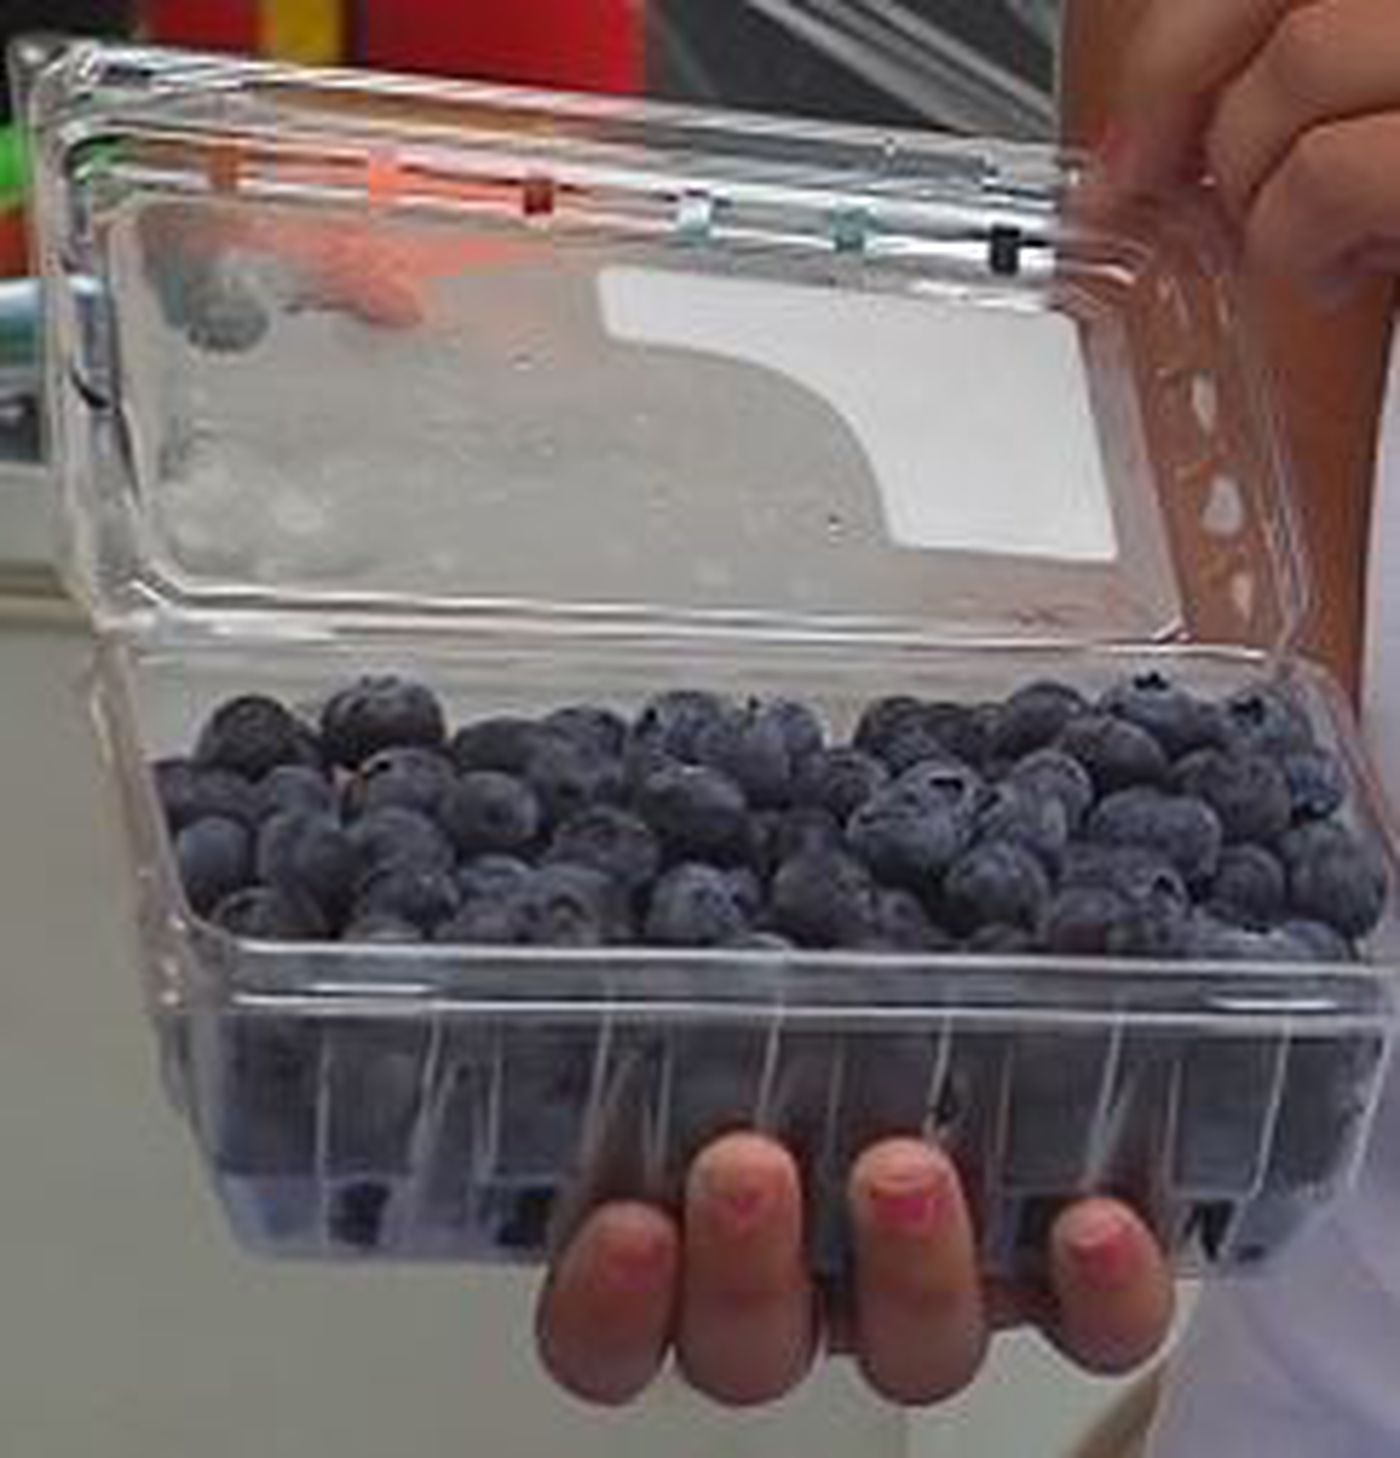 Highway 6: Blueberries produce huge health benefits